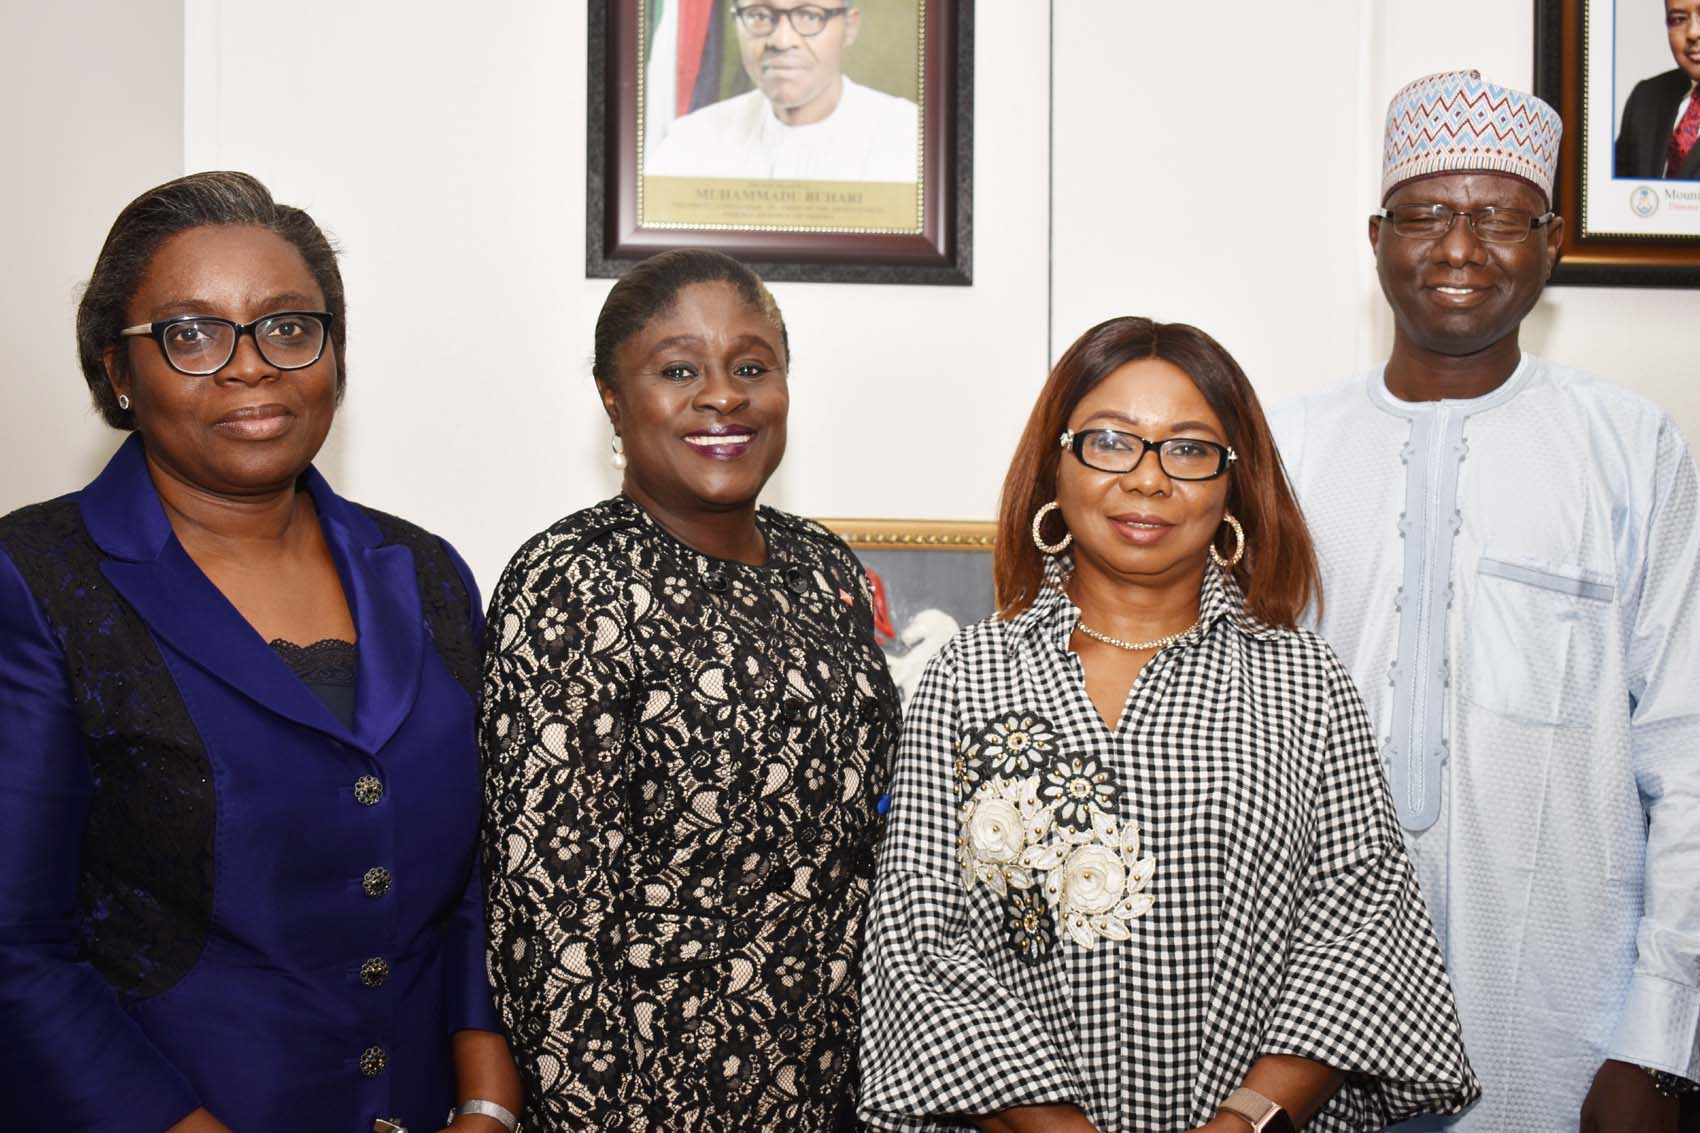 SEC Boss Meets Trustees, Restates Commitment To Investor Protection